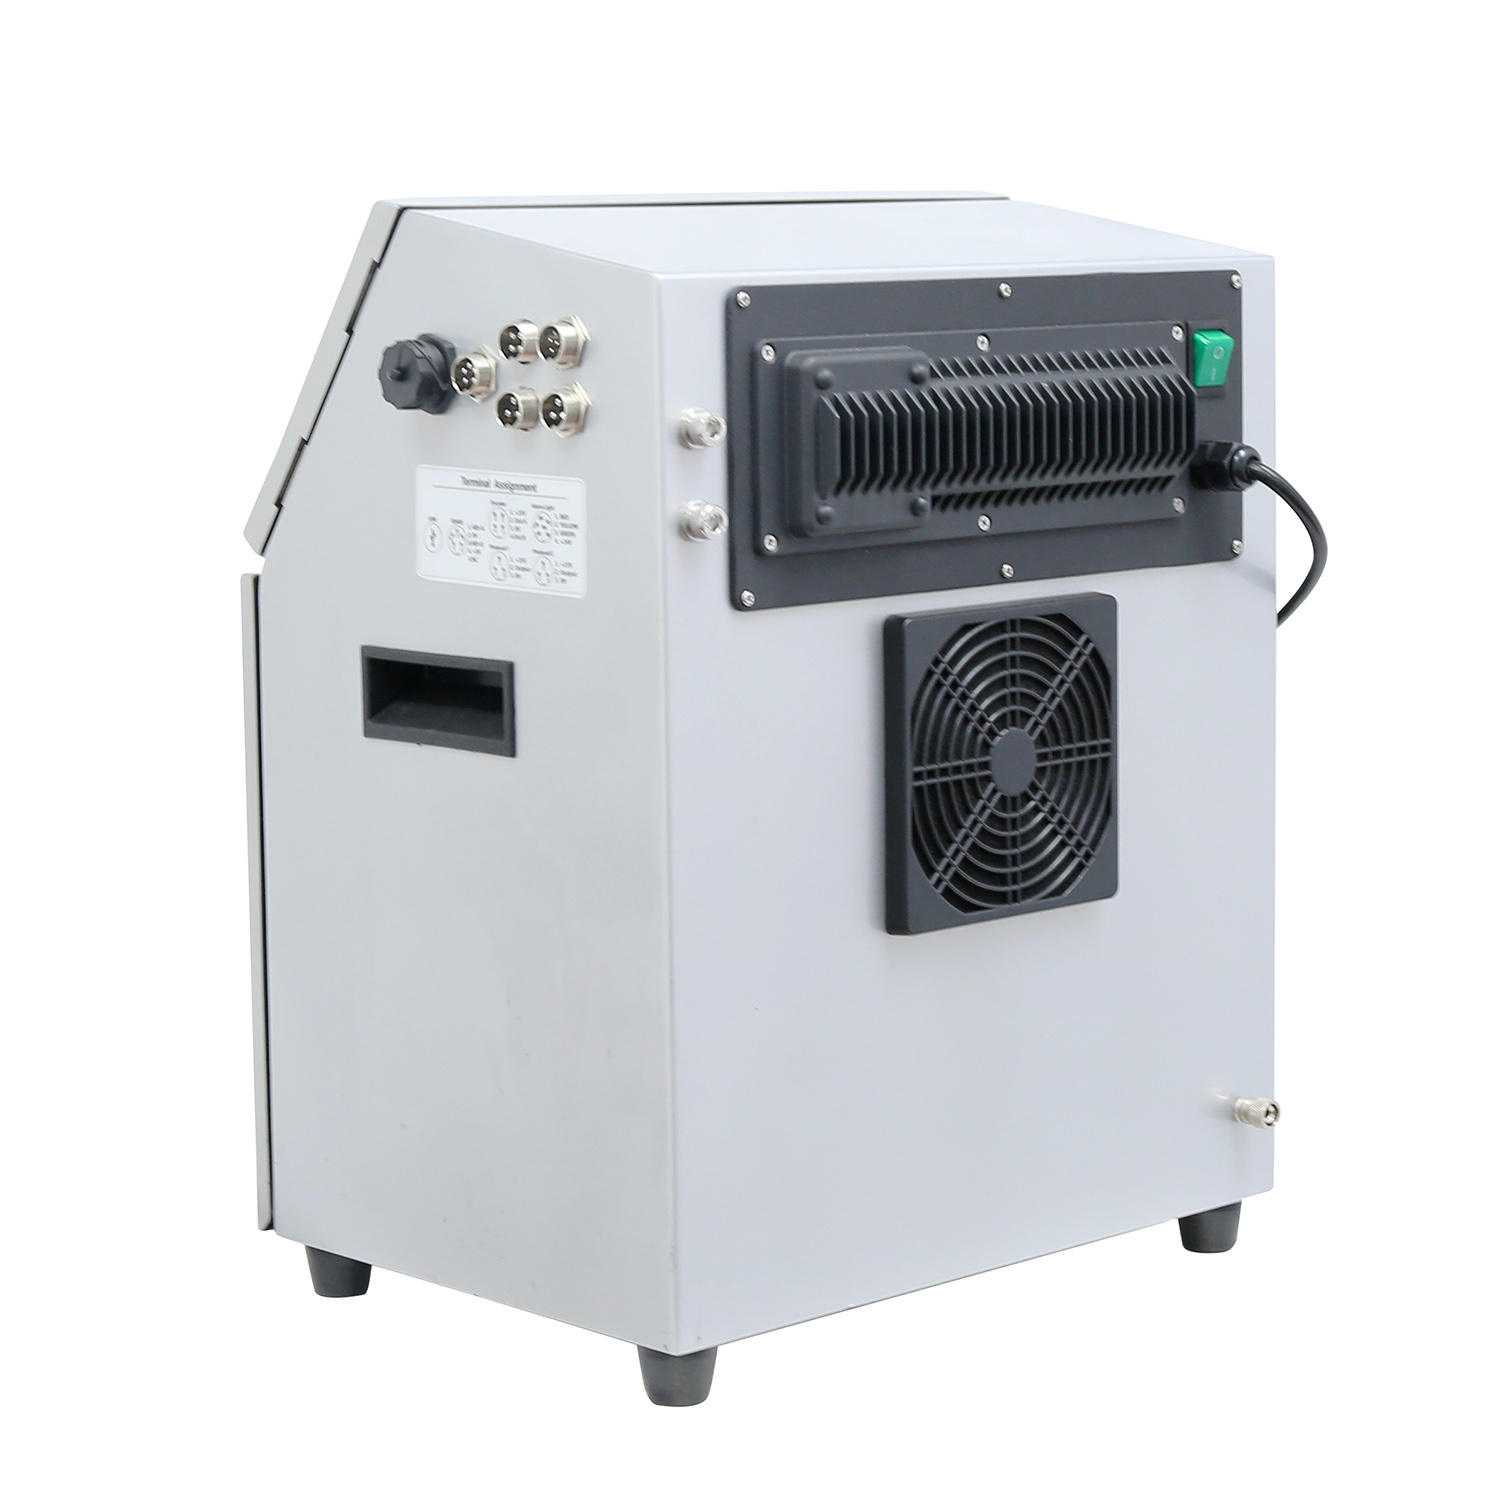 Lead Tech Lt800 Digital Printing Eco Solvent Printer